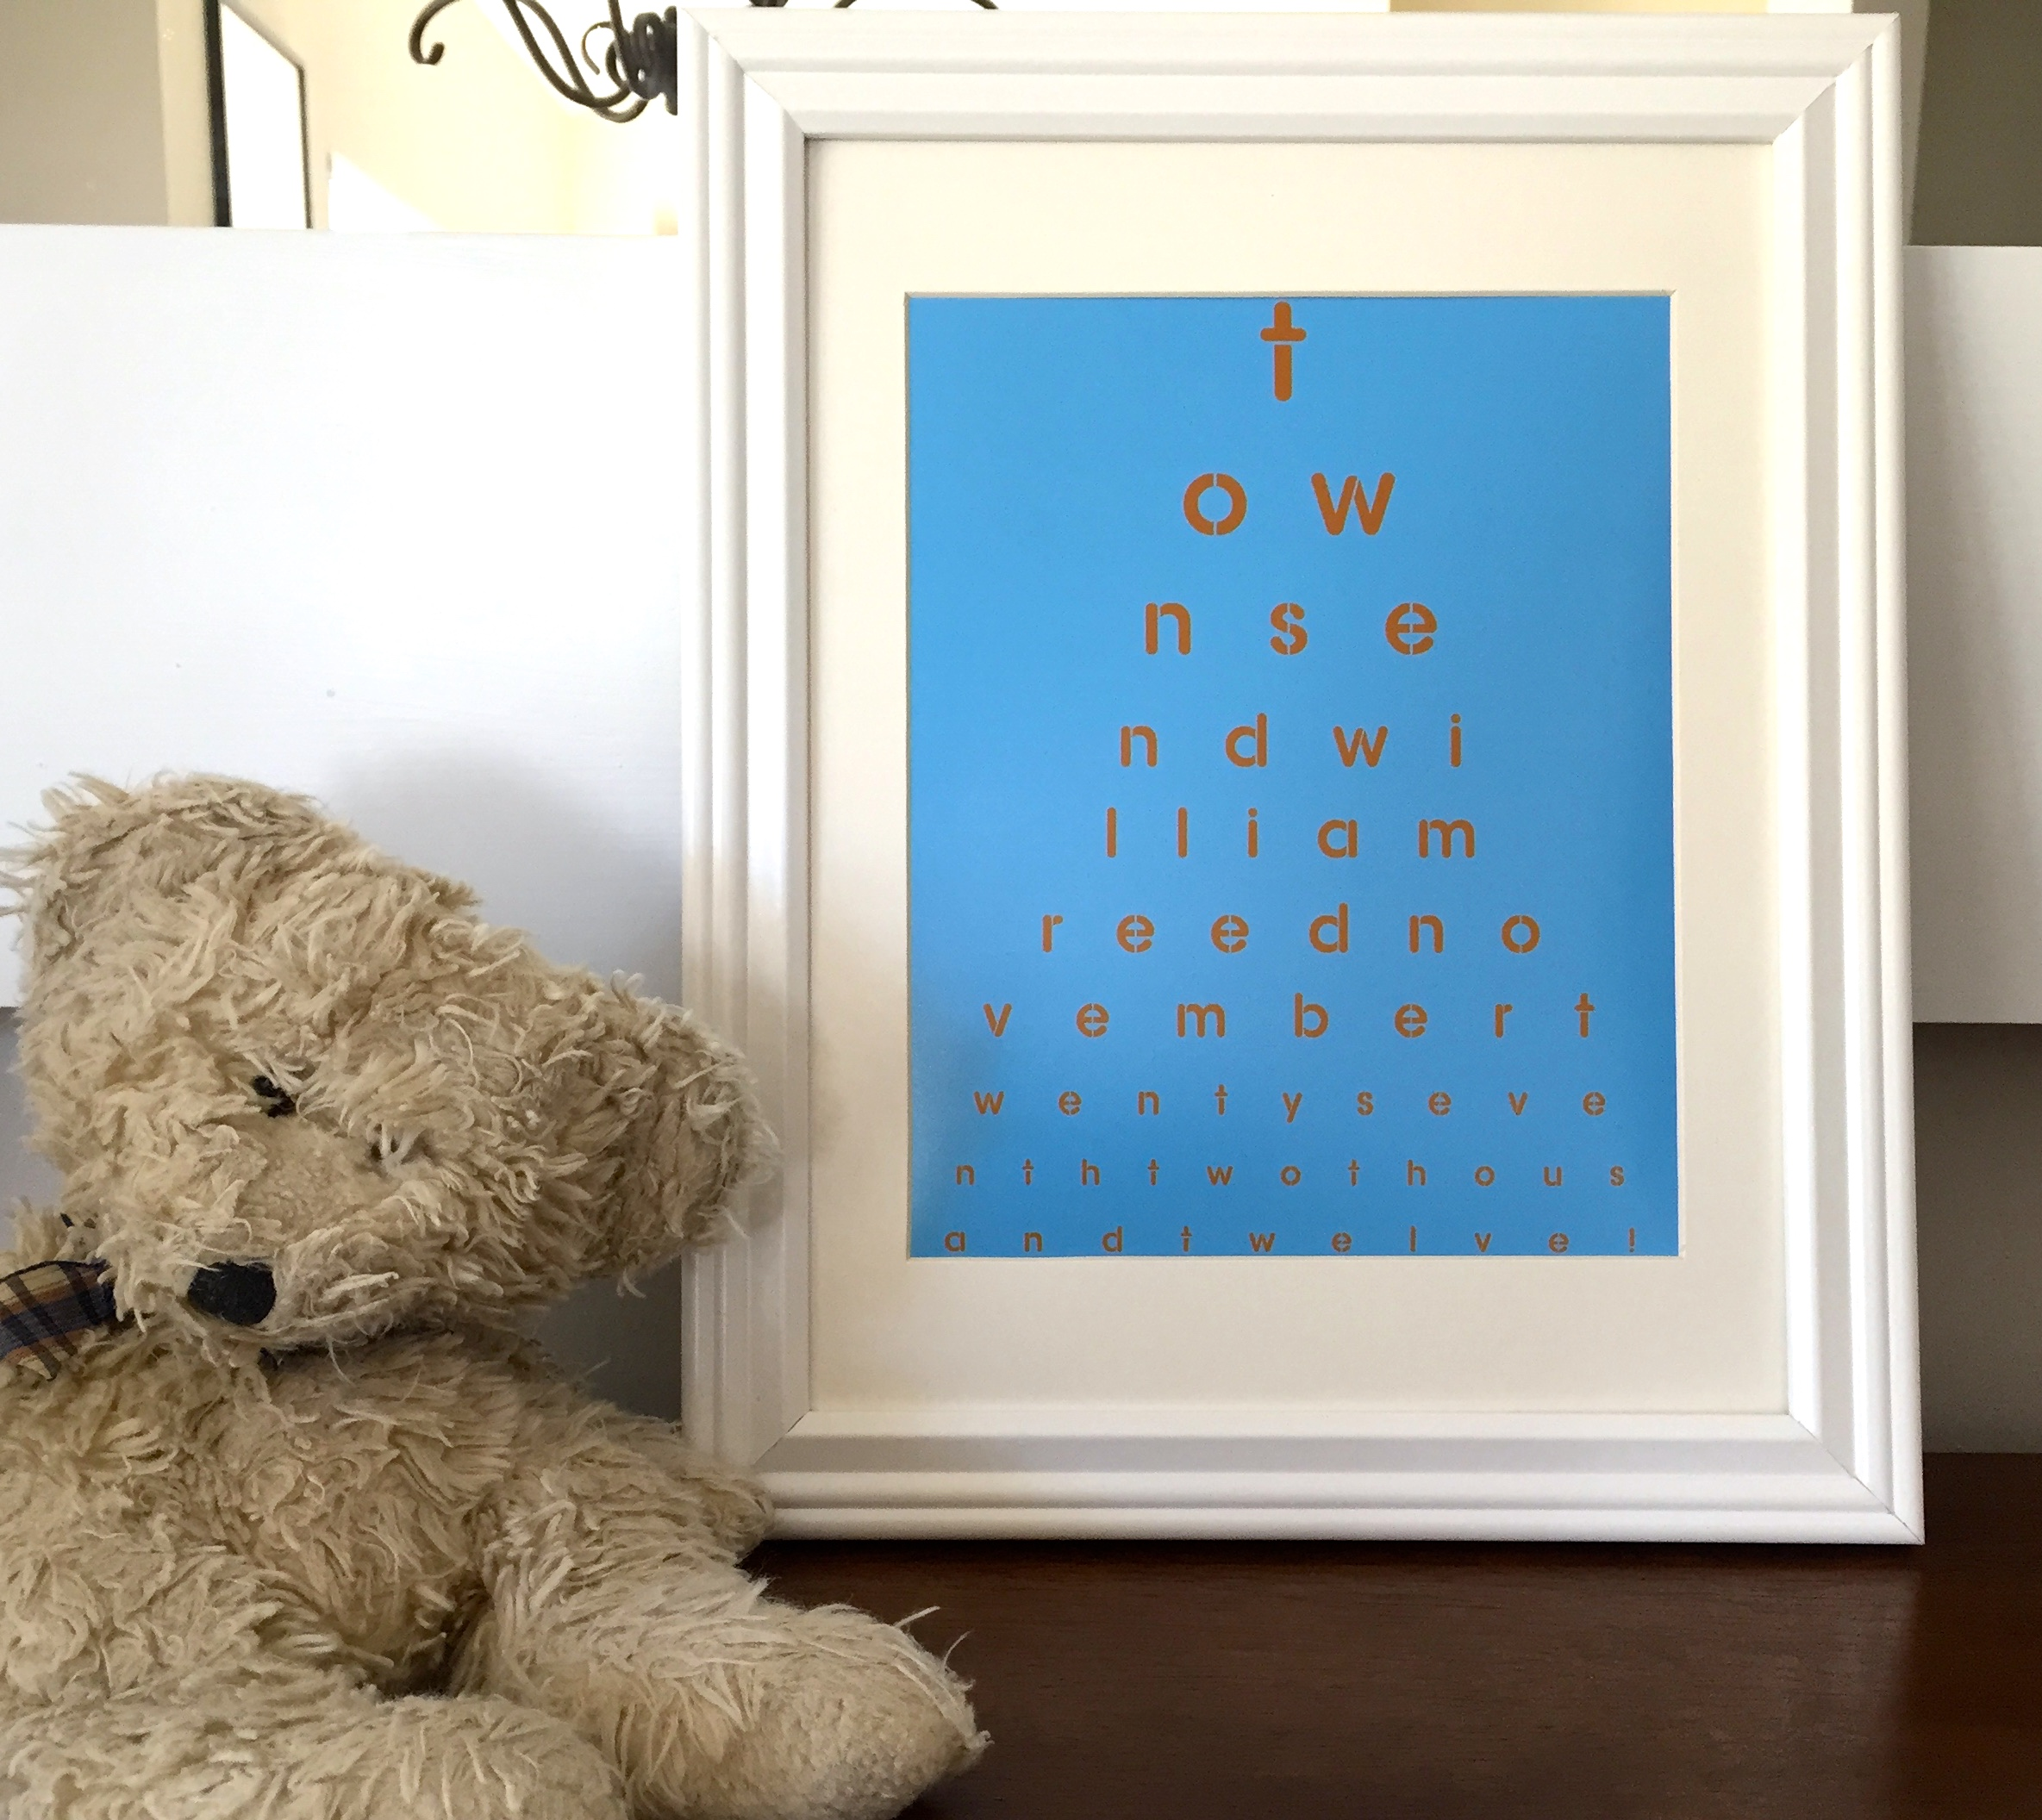 Customized eye chart maker great for personalized gifts and home toddler room decor customized eye chart nvjuhfo Image collections